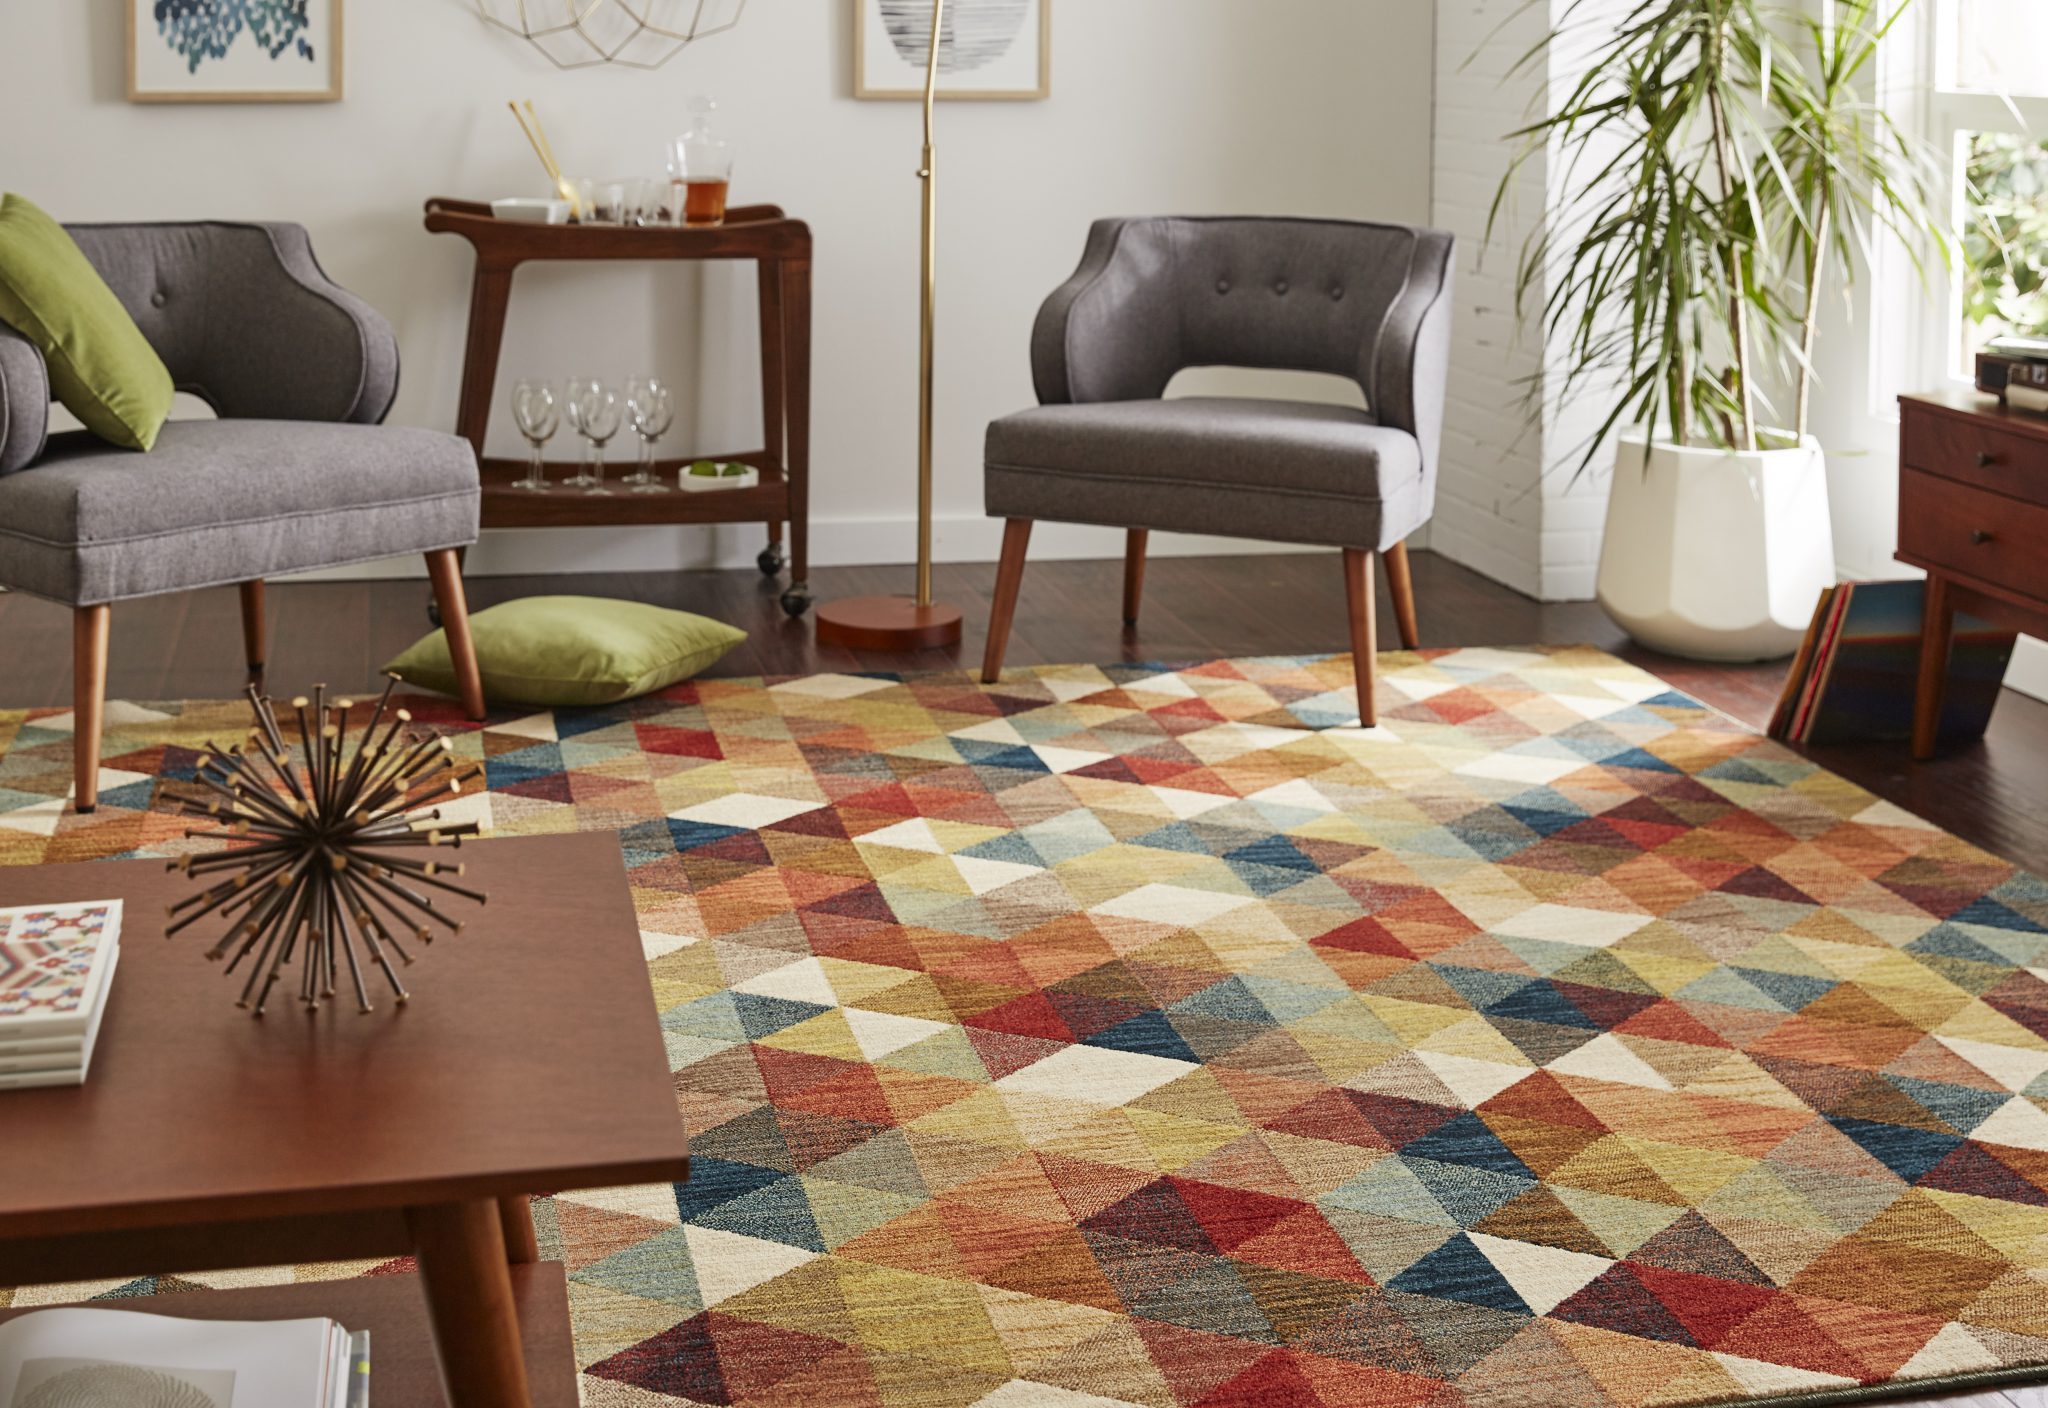 Rug Pictured: Mohawk Home Diamonte Multi